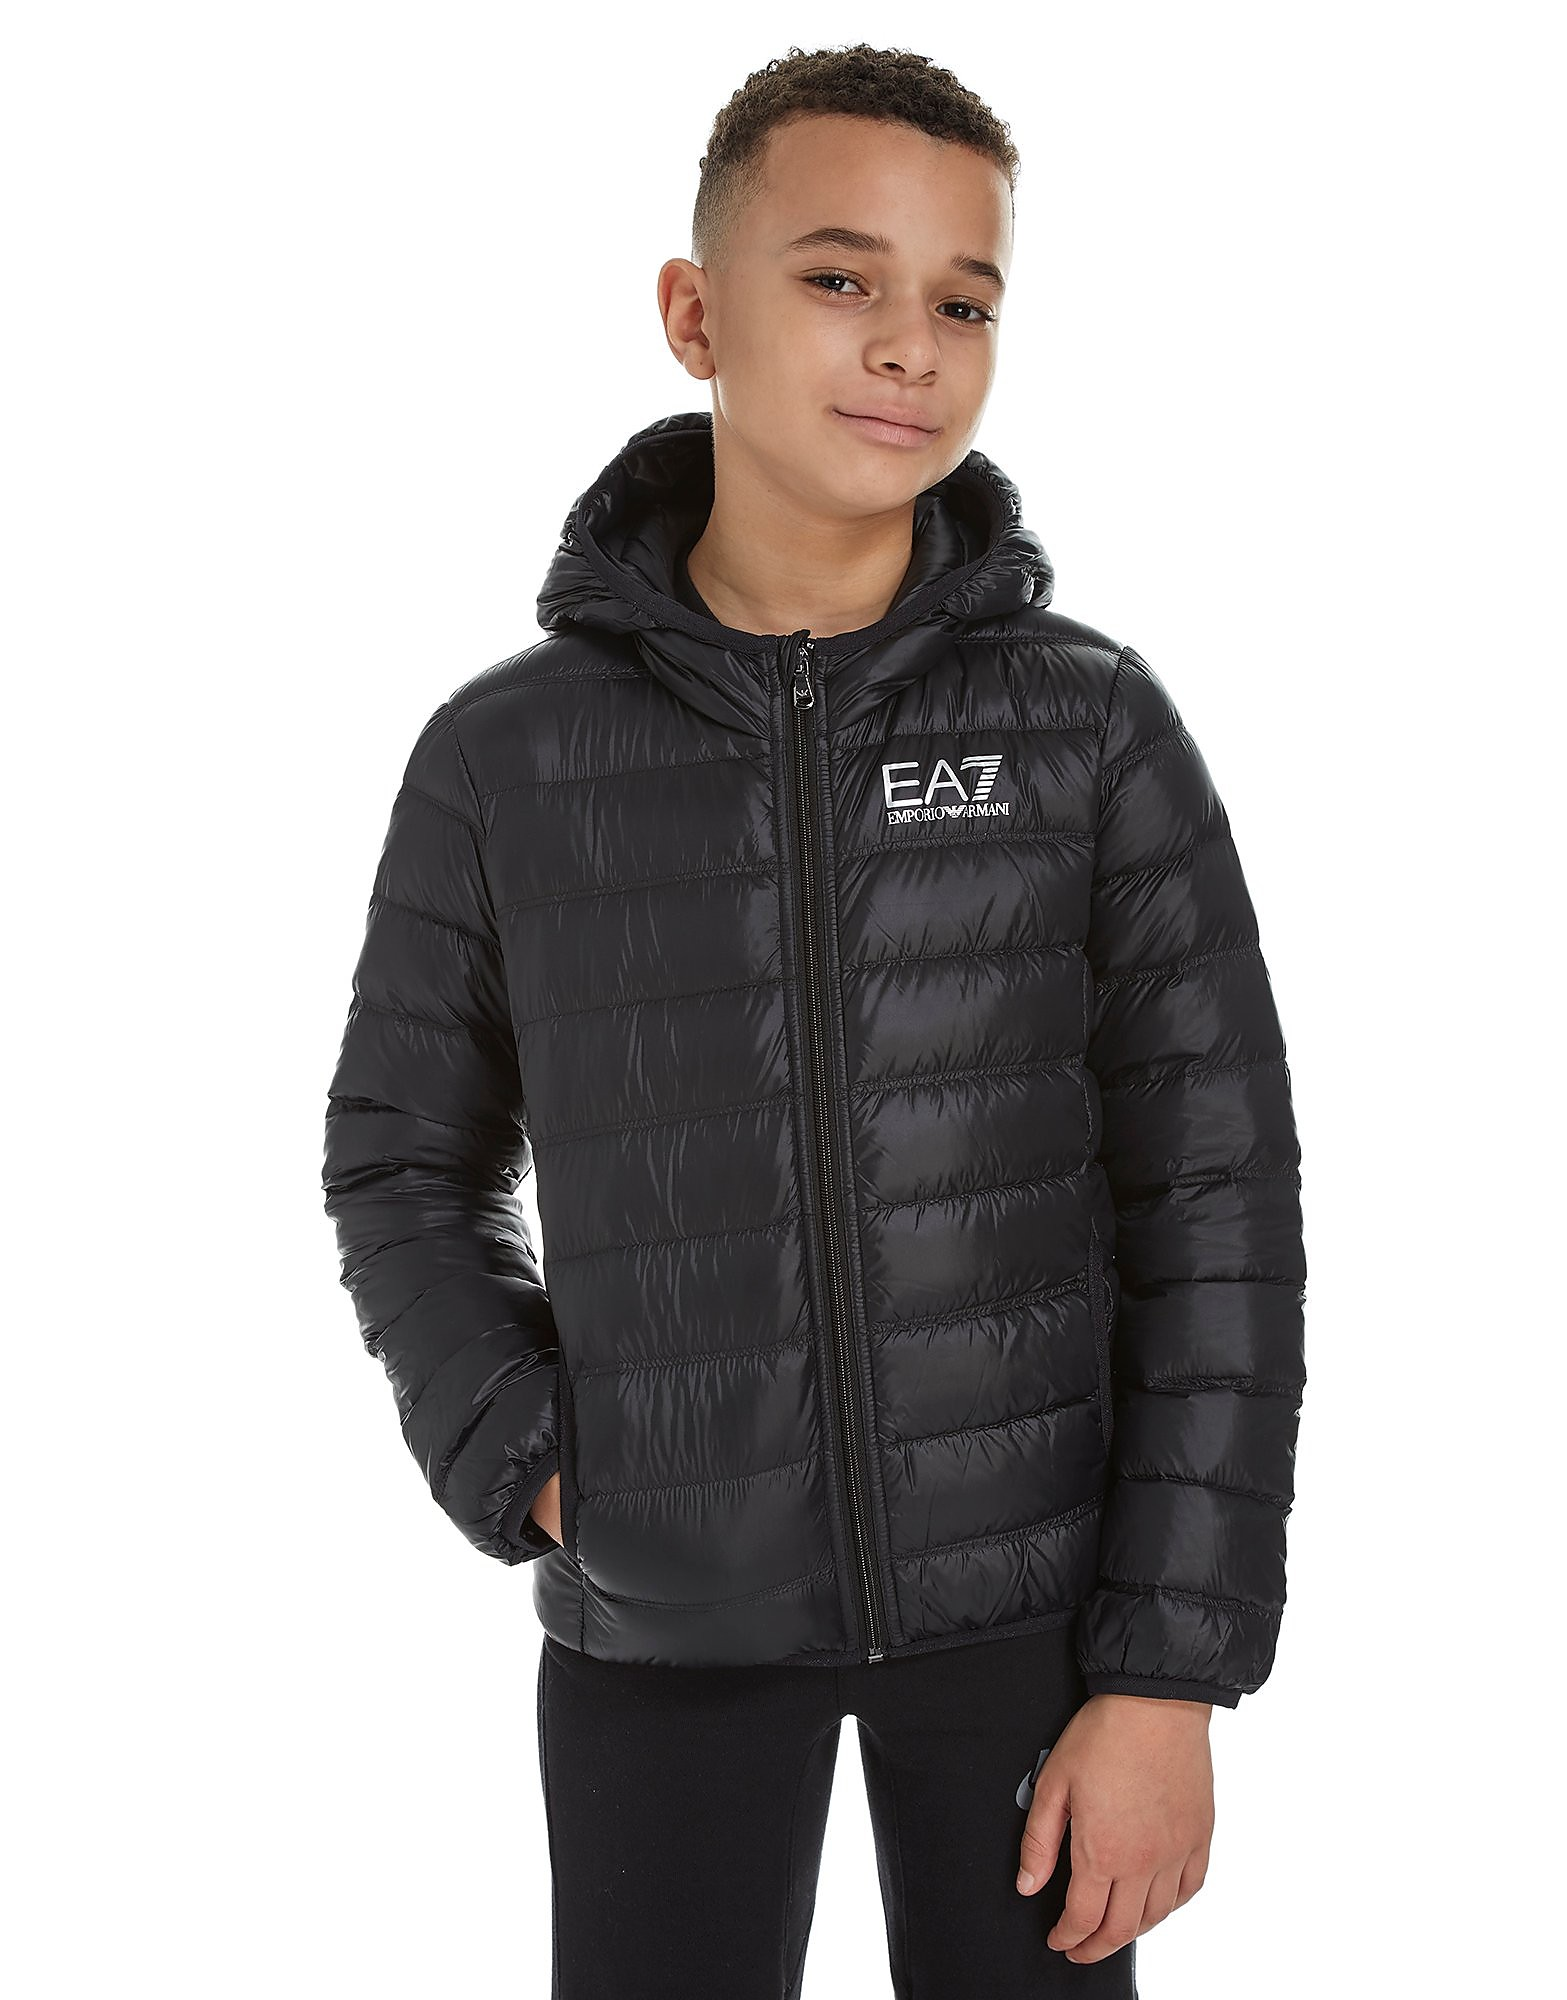 Emporio Armani EA7 Core Down Jacket Junior - BLK/BLK - Kind